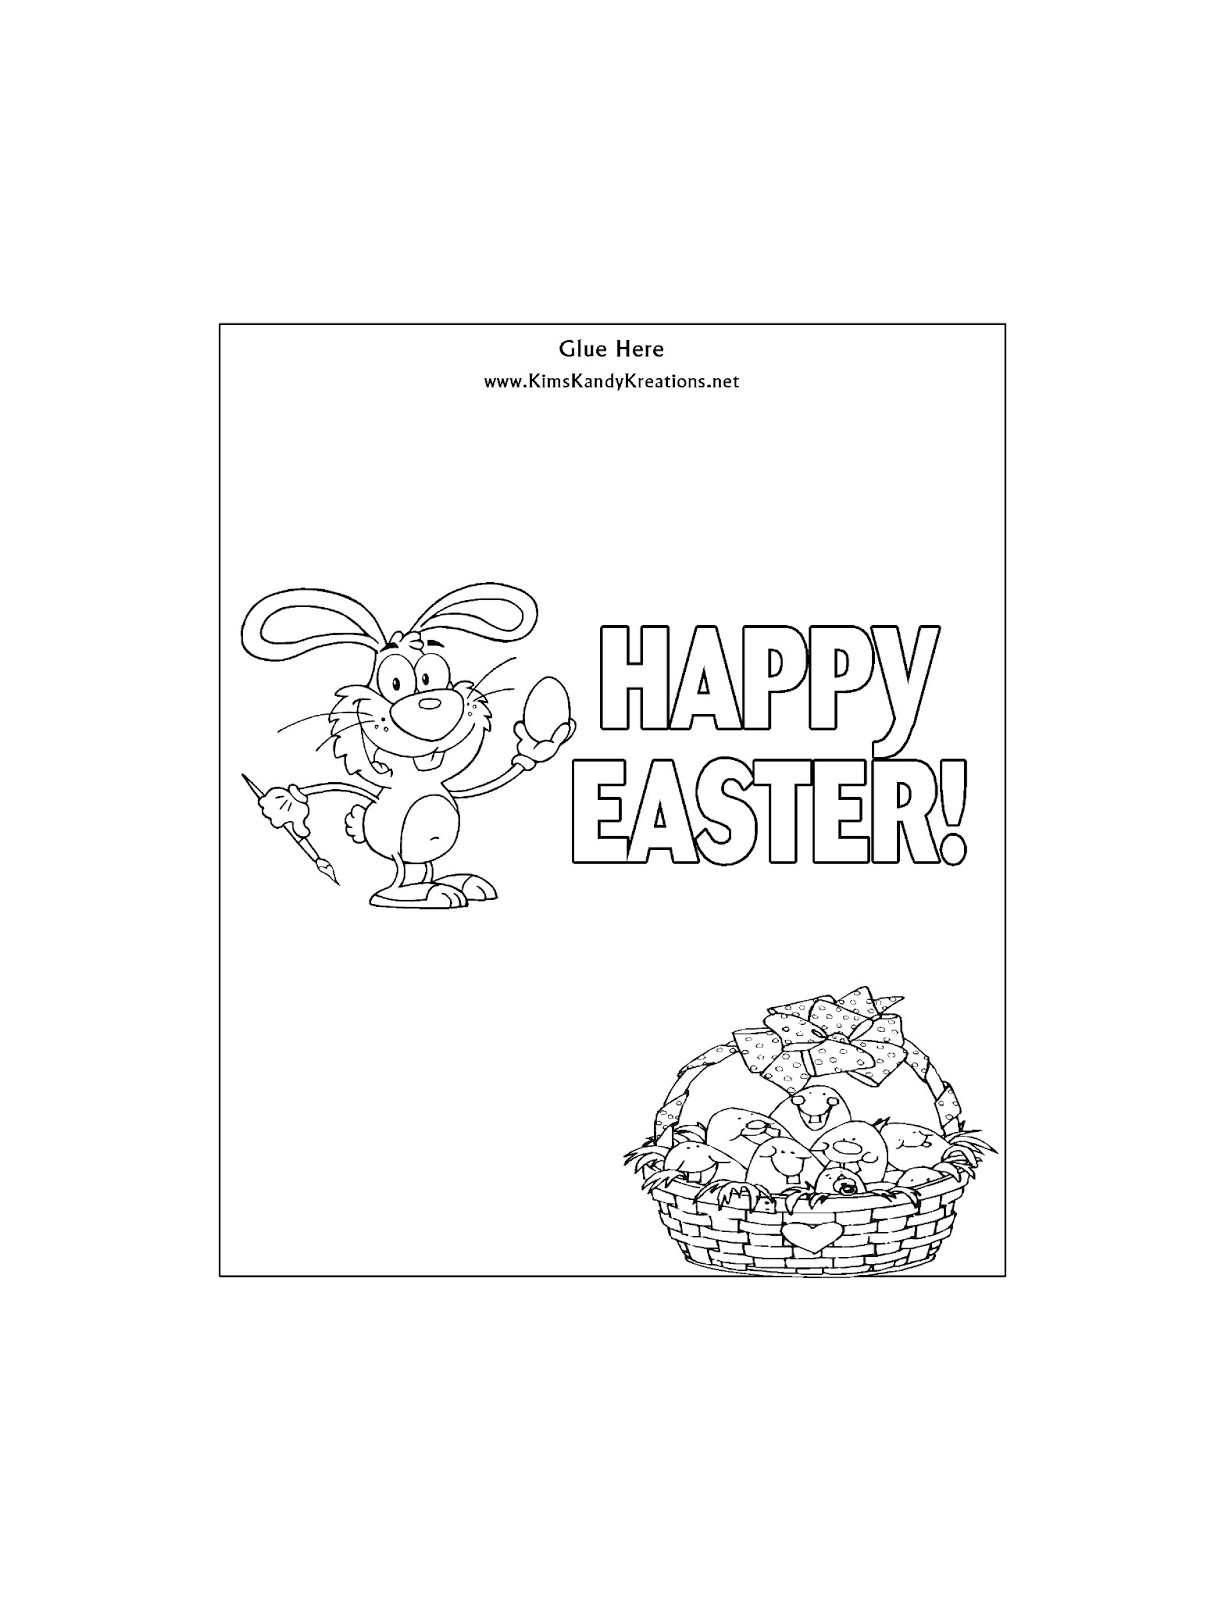 Top 50 Free Printable Barbie Coloring Pages Online | 1600x1225